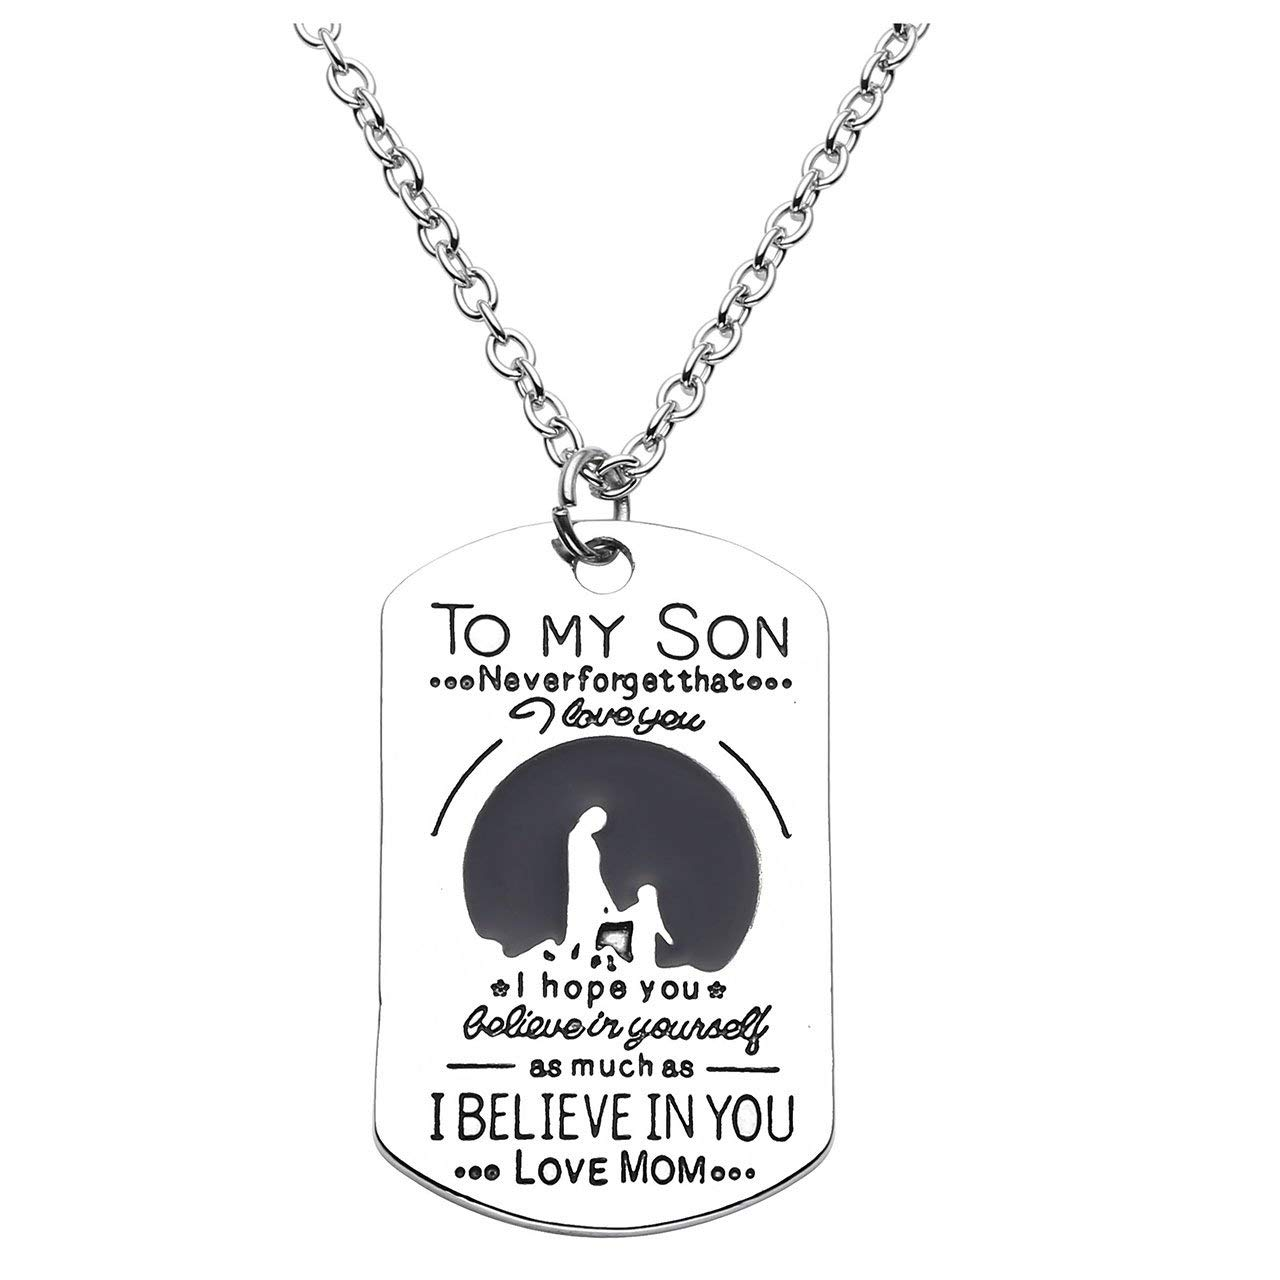 8261bd07d Get Quotations · Top Plaza Fashion Silver Tone to My Son/I Love You/I  Believe in